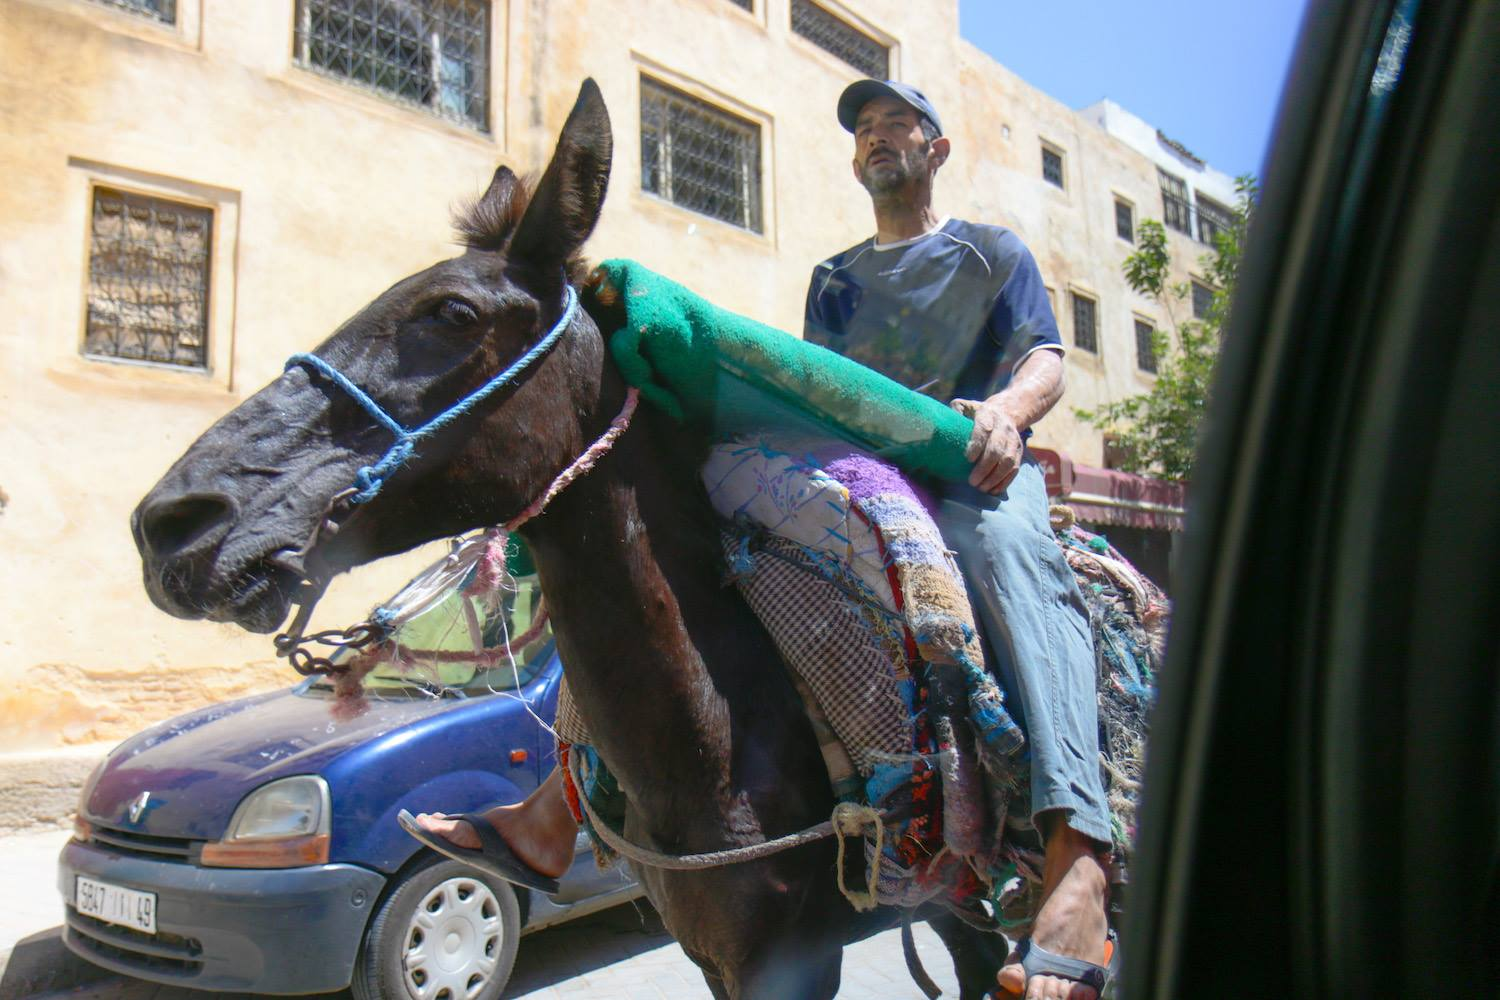 The only means of transportation in Fez Medina are horses and carts